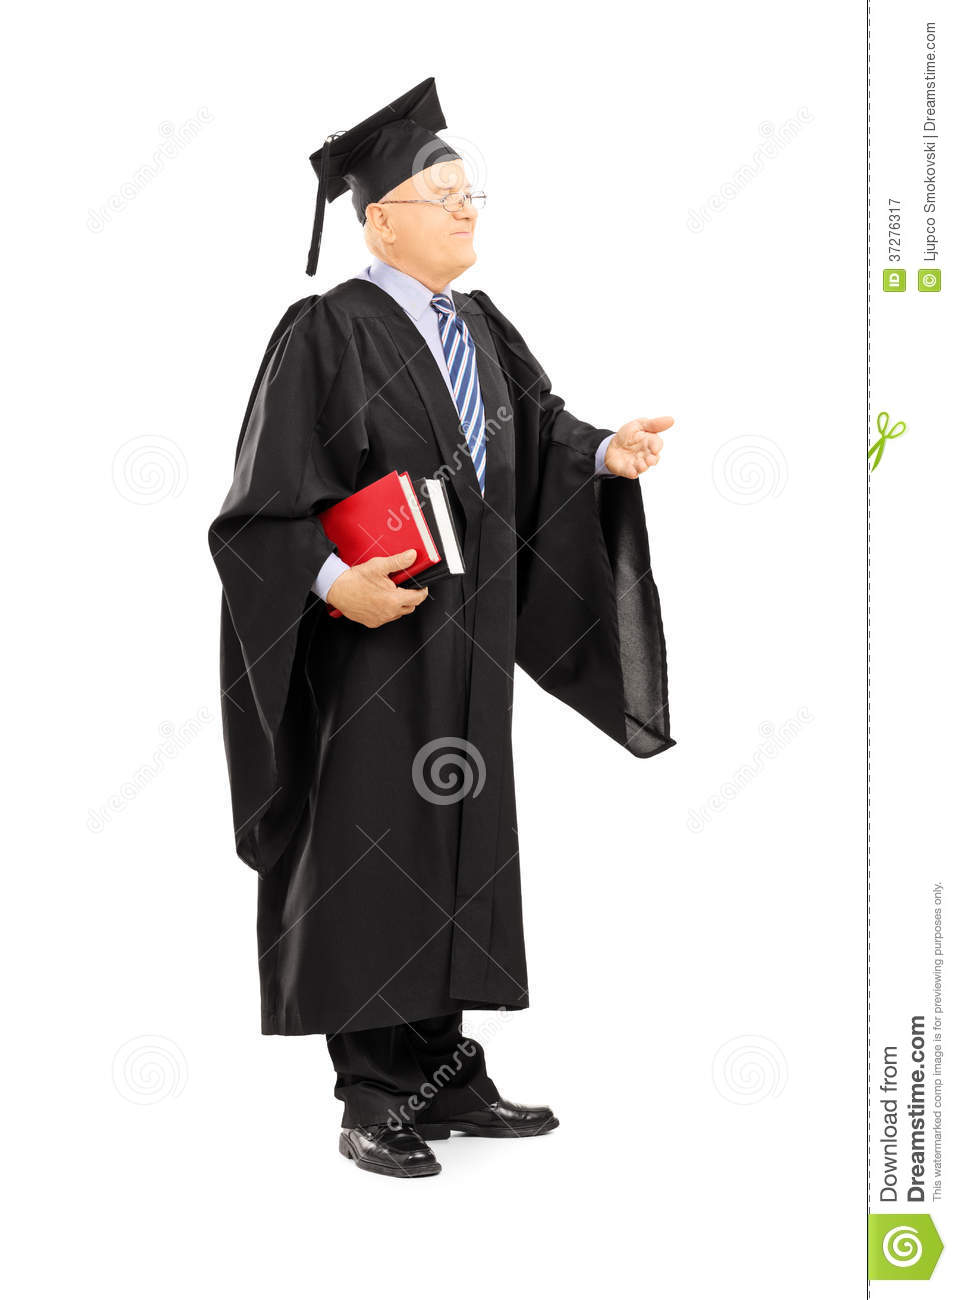 Free Clipart Graduation Cap And Gown